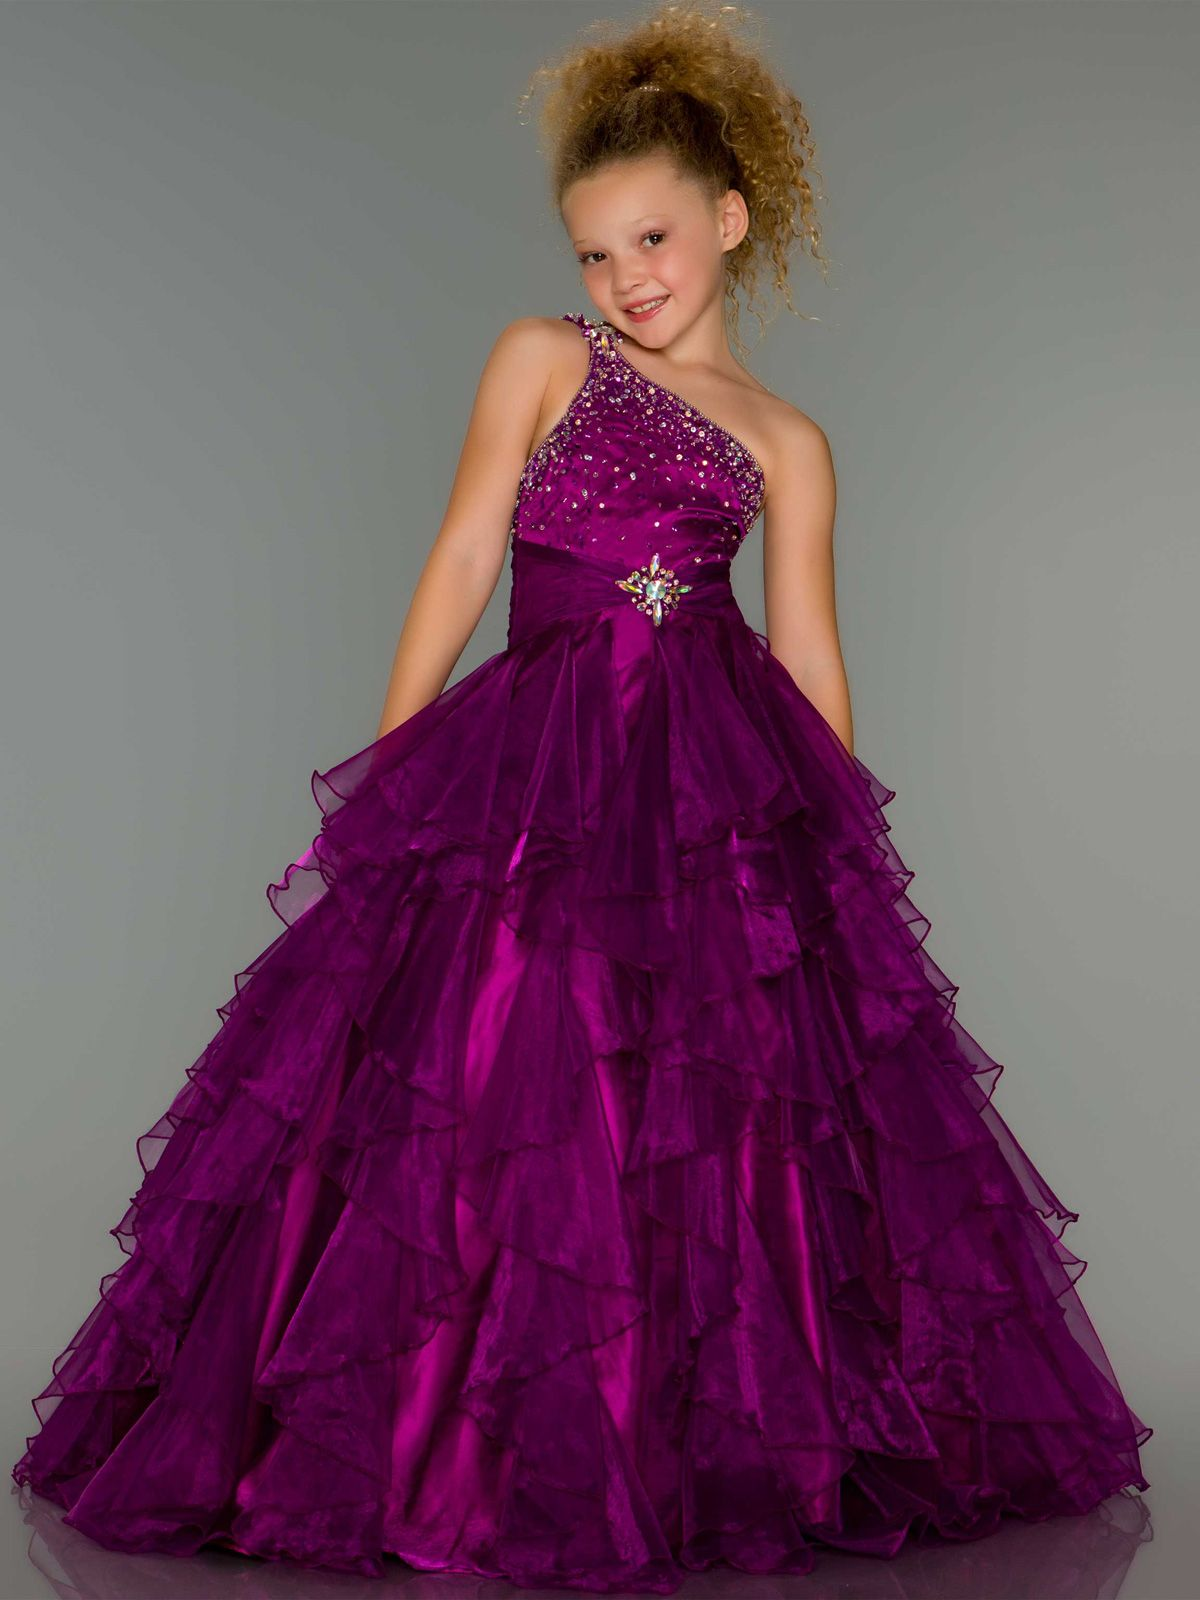 Sugar Pageant Dress 42544S National Junior Miss Gowns ...